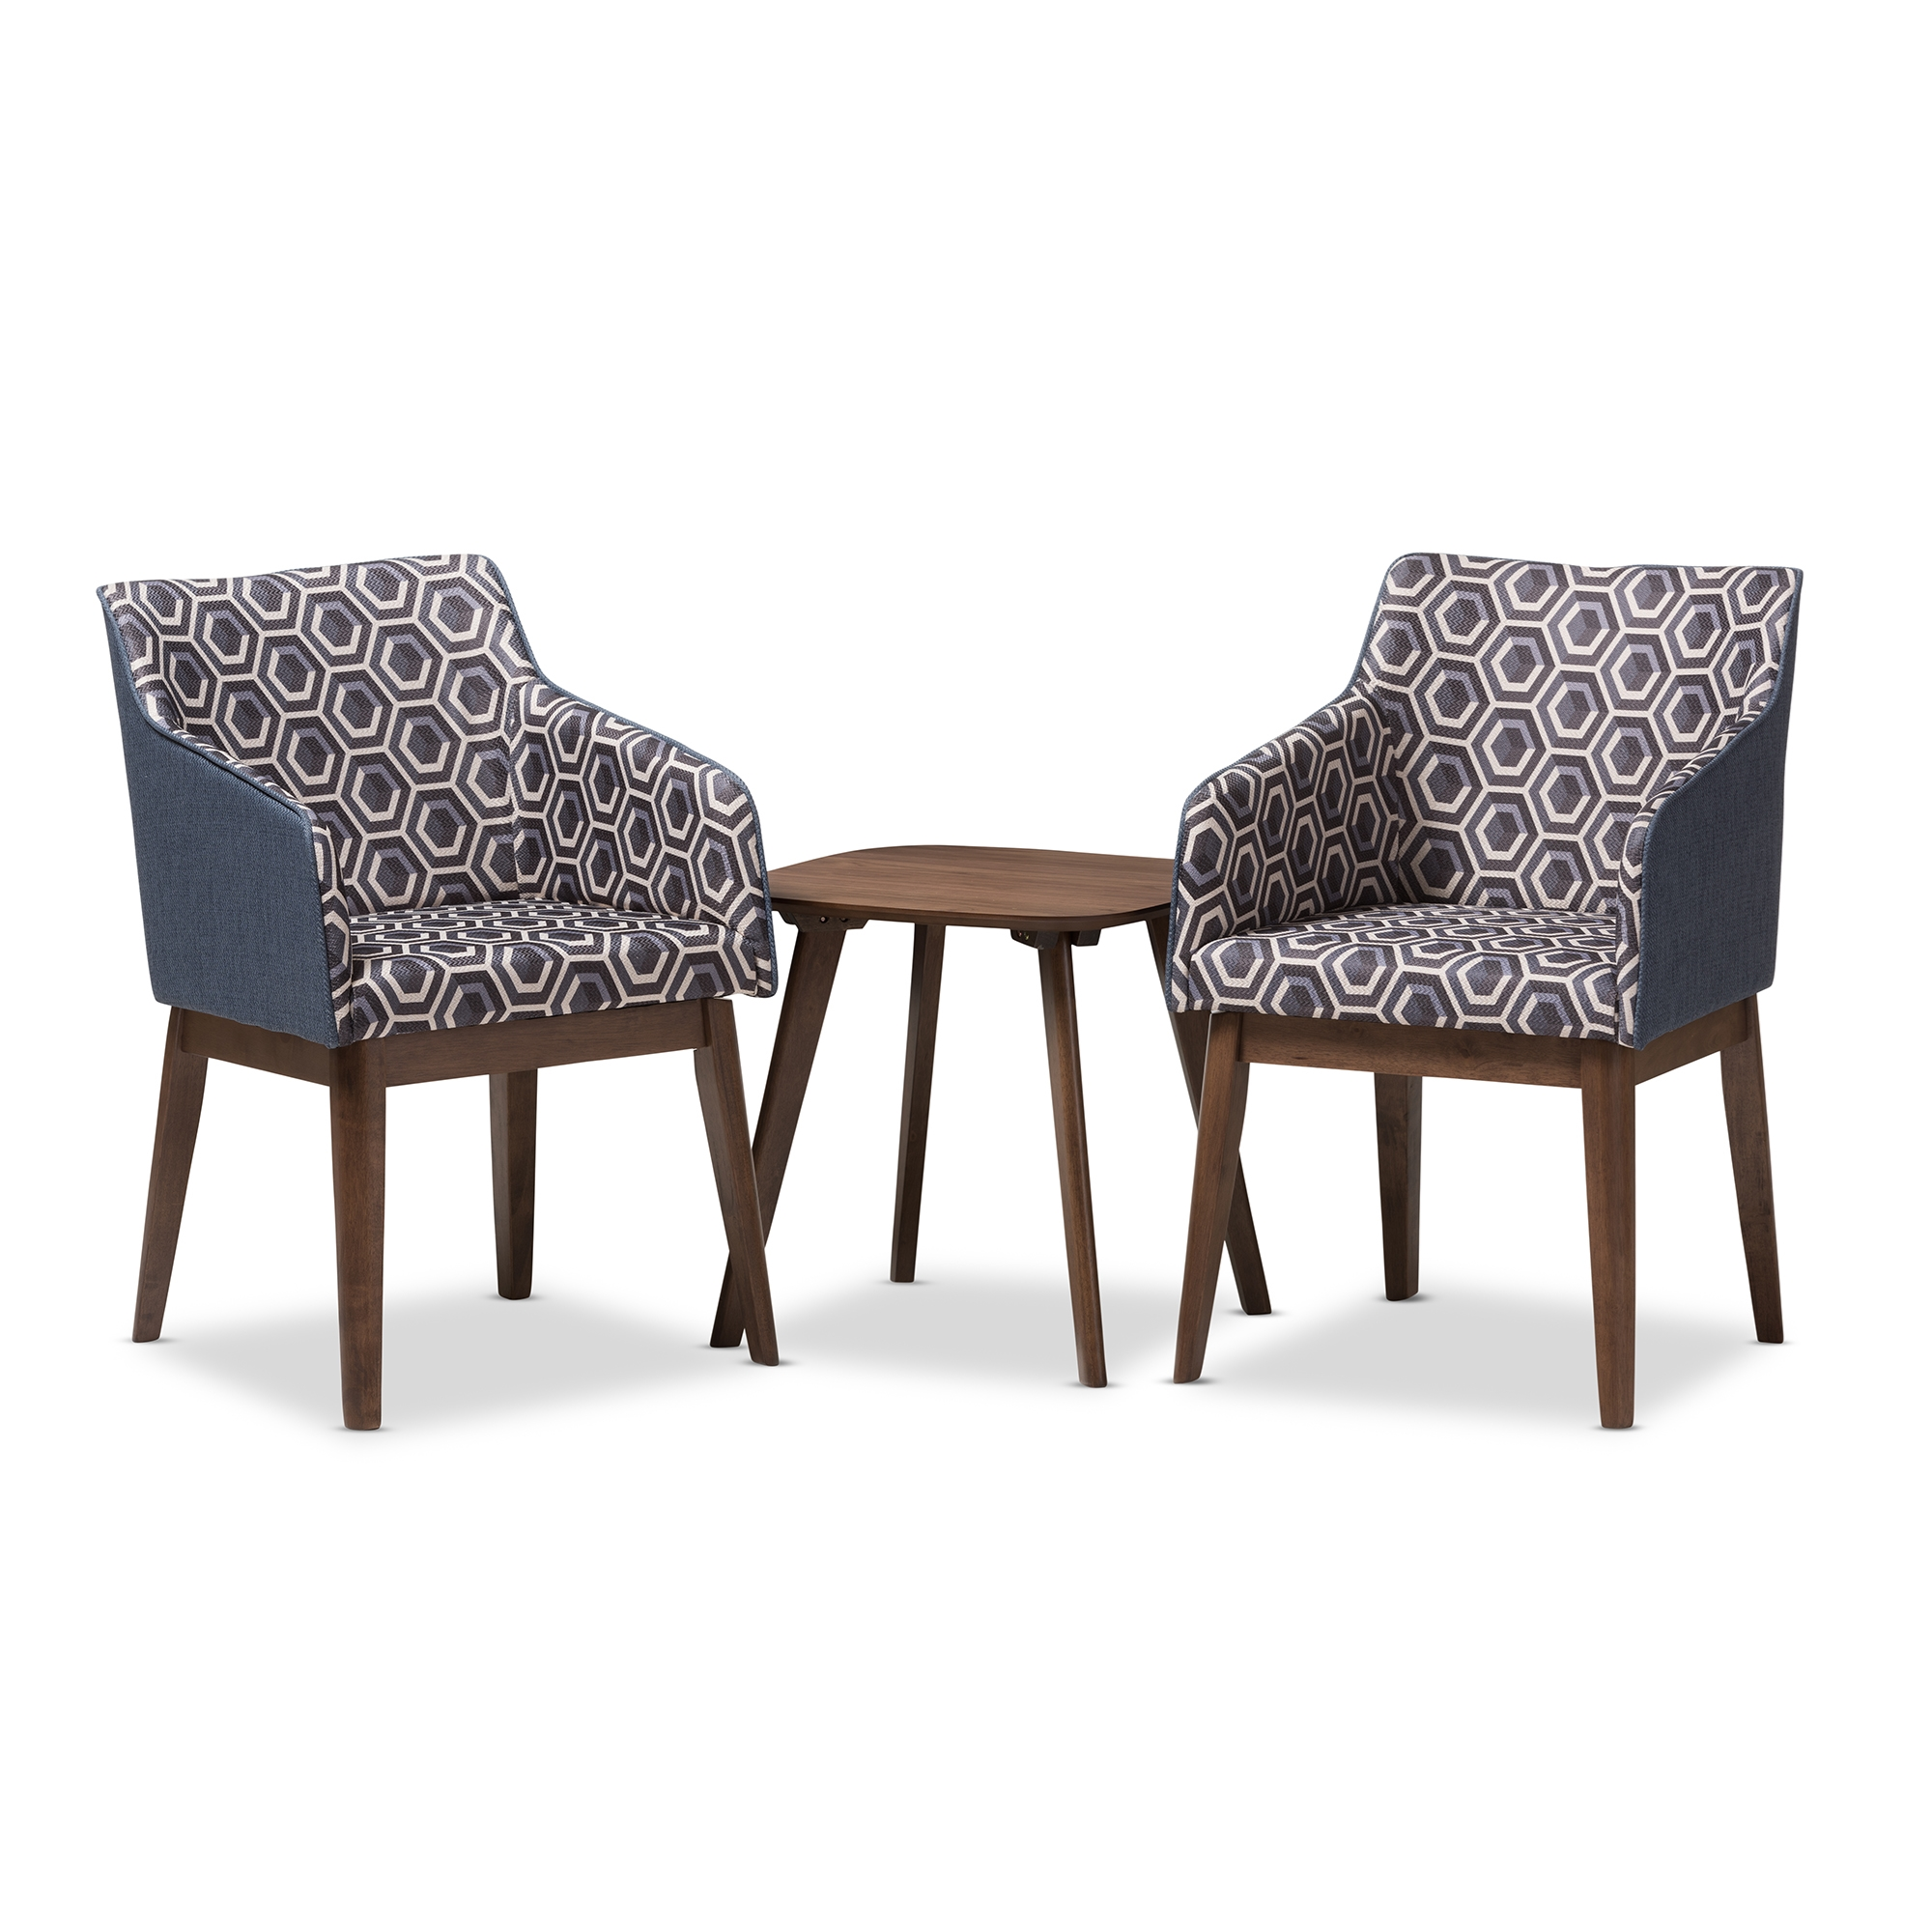 Baxton Studio Reece Mid Century Modern 3 Piece Lounge Chair And Side Table  Set